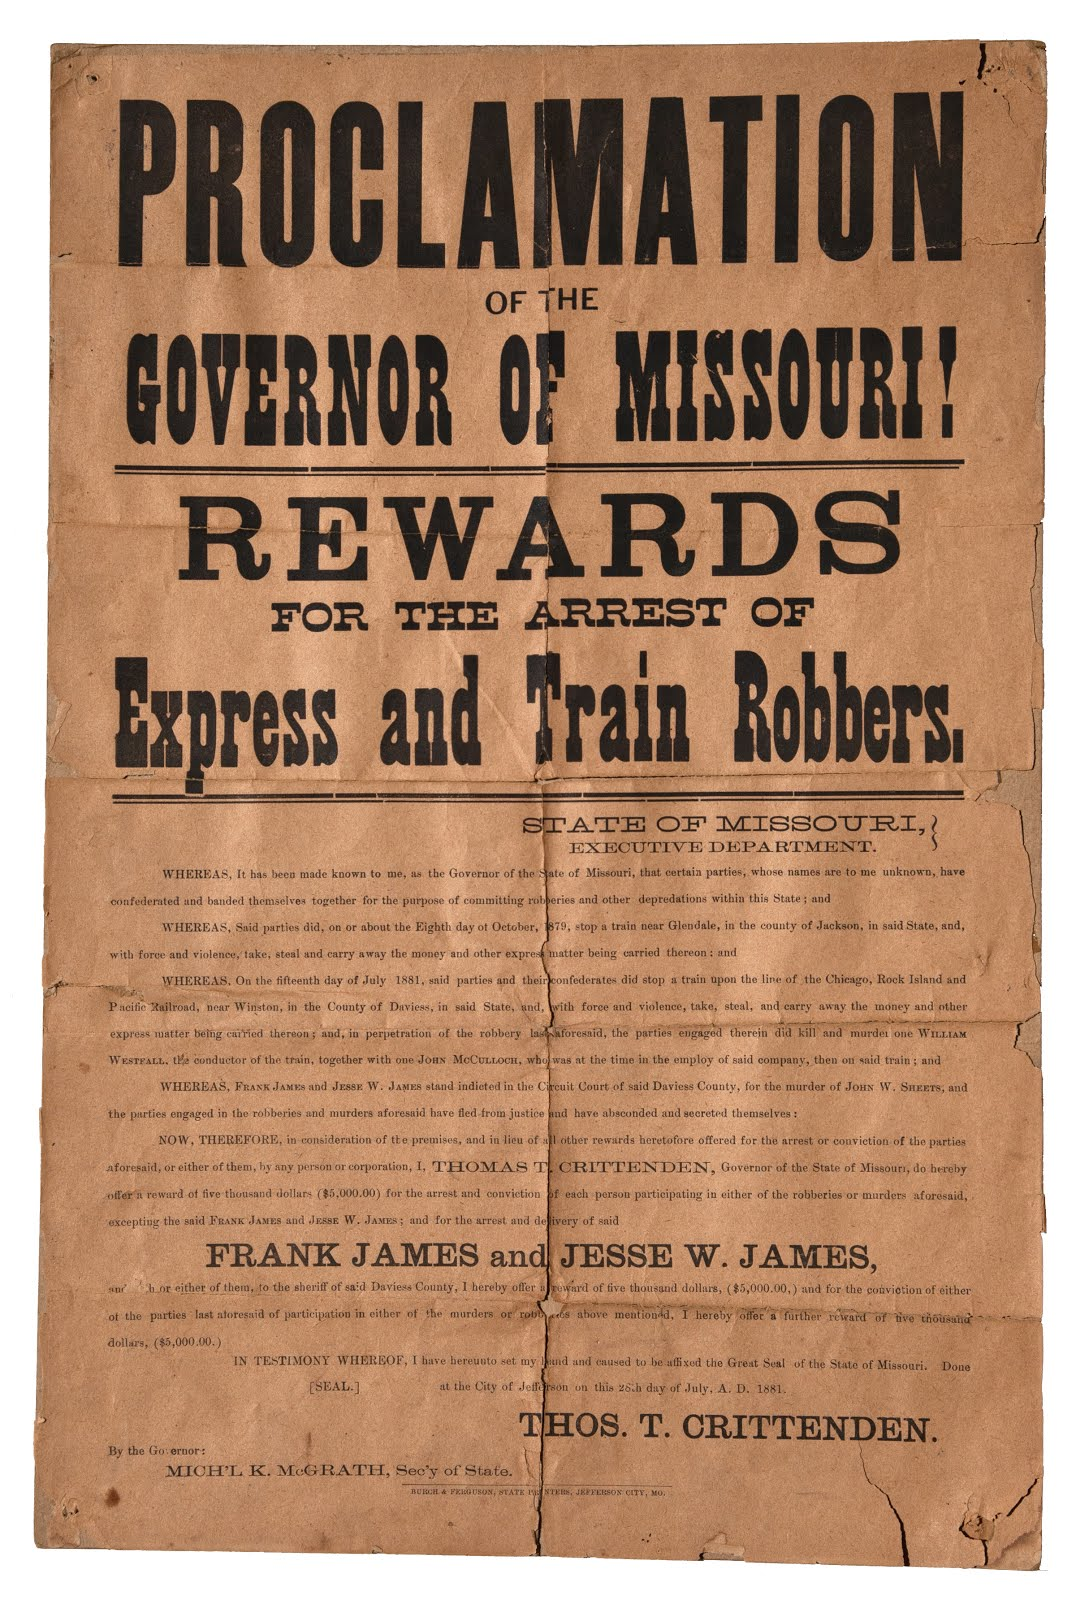 Jesse & Frank James Wanted Poster